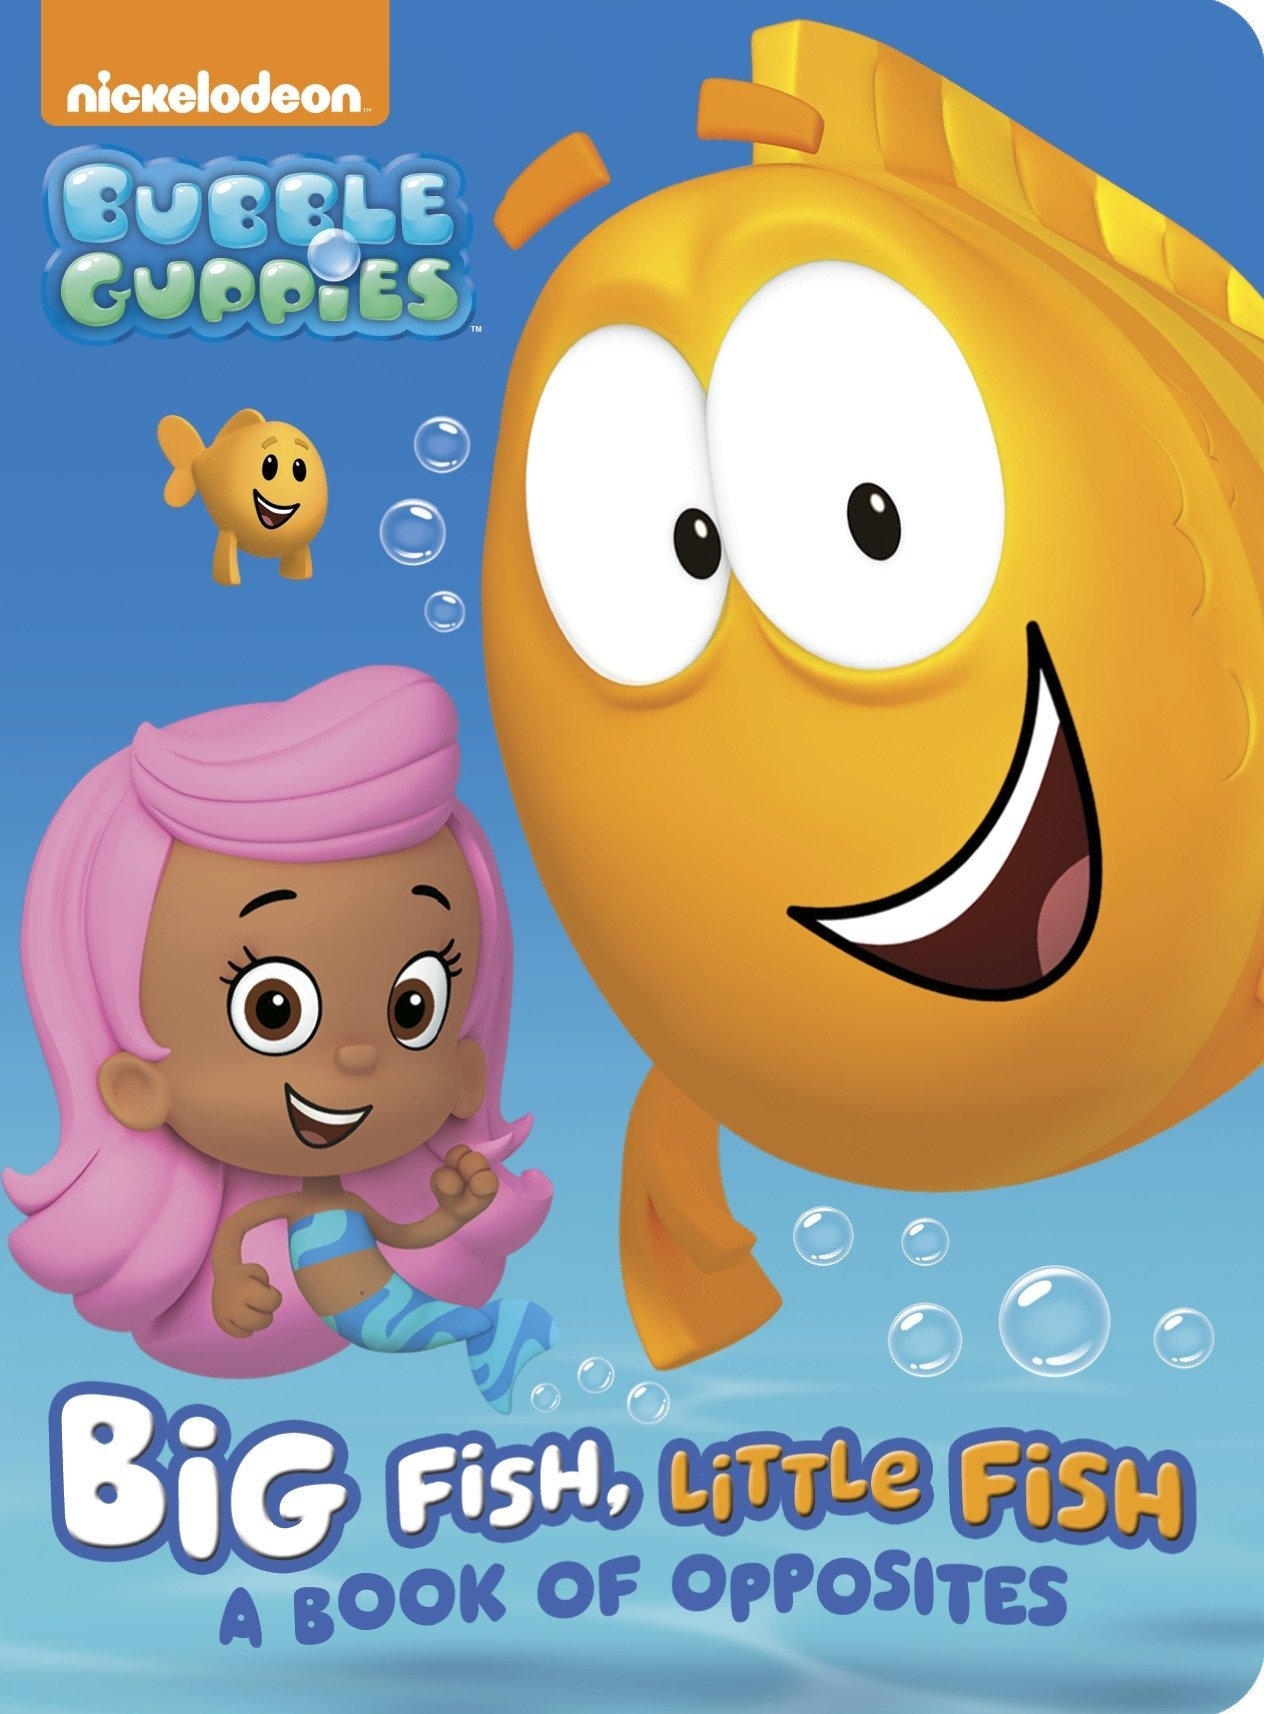 Bubble guppies gil molly and bubble puppy and mr grouper medium plush doll set 10 - Bubulles guppies ...